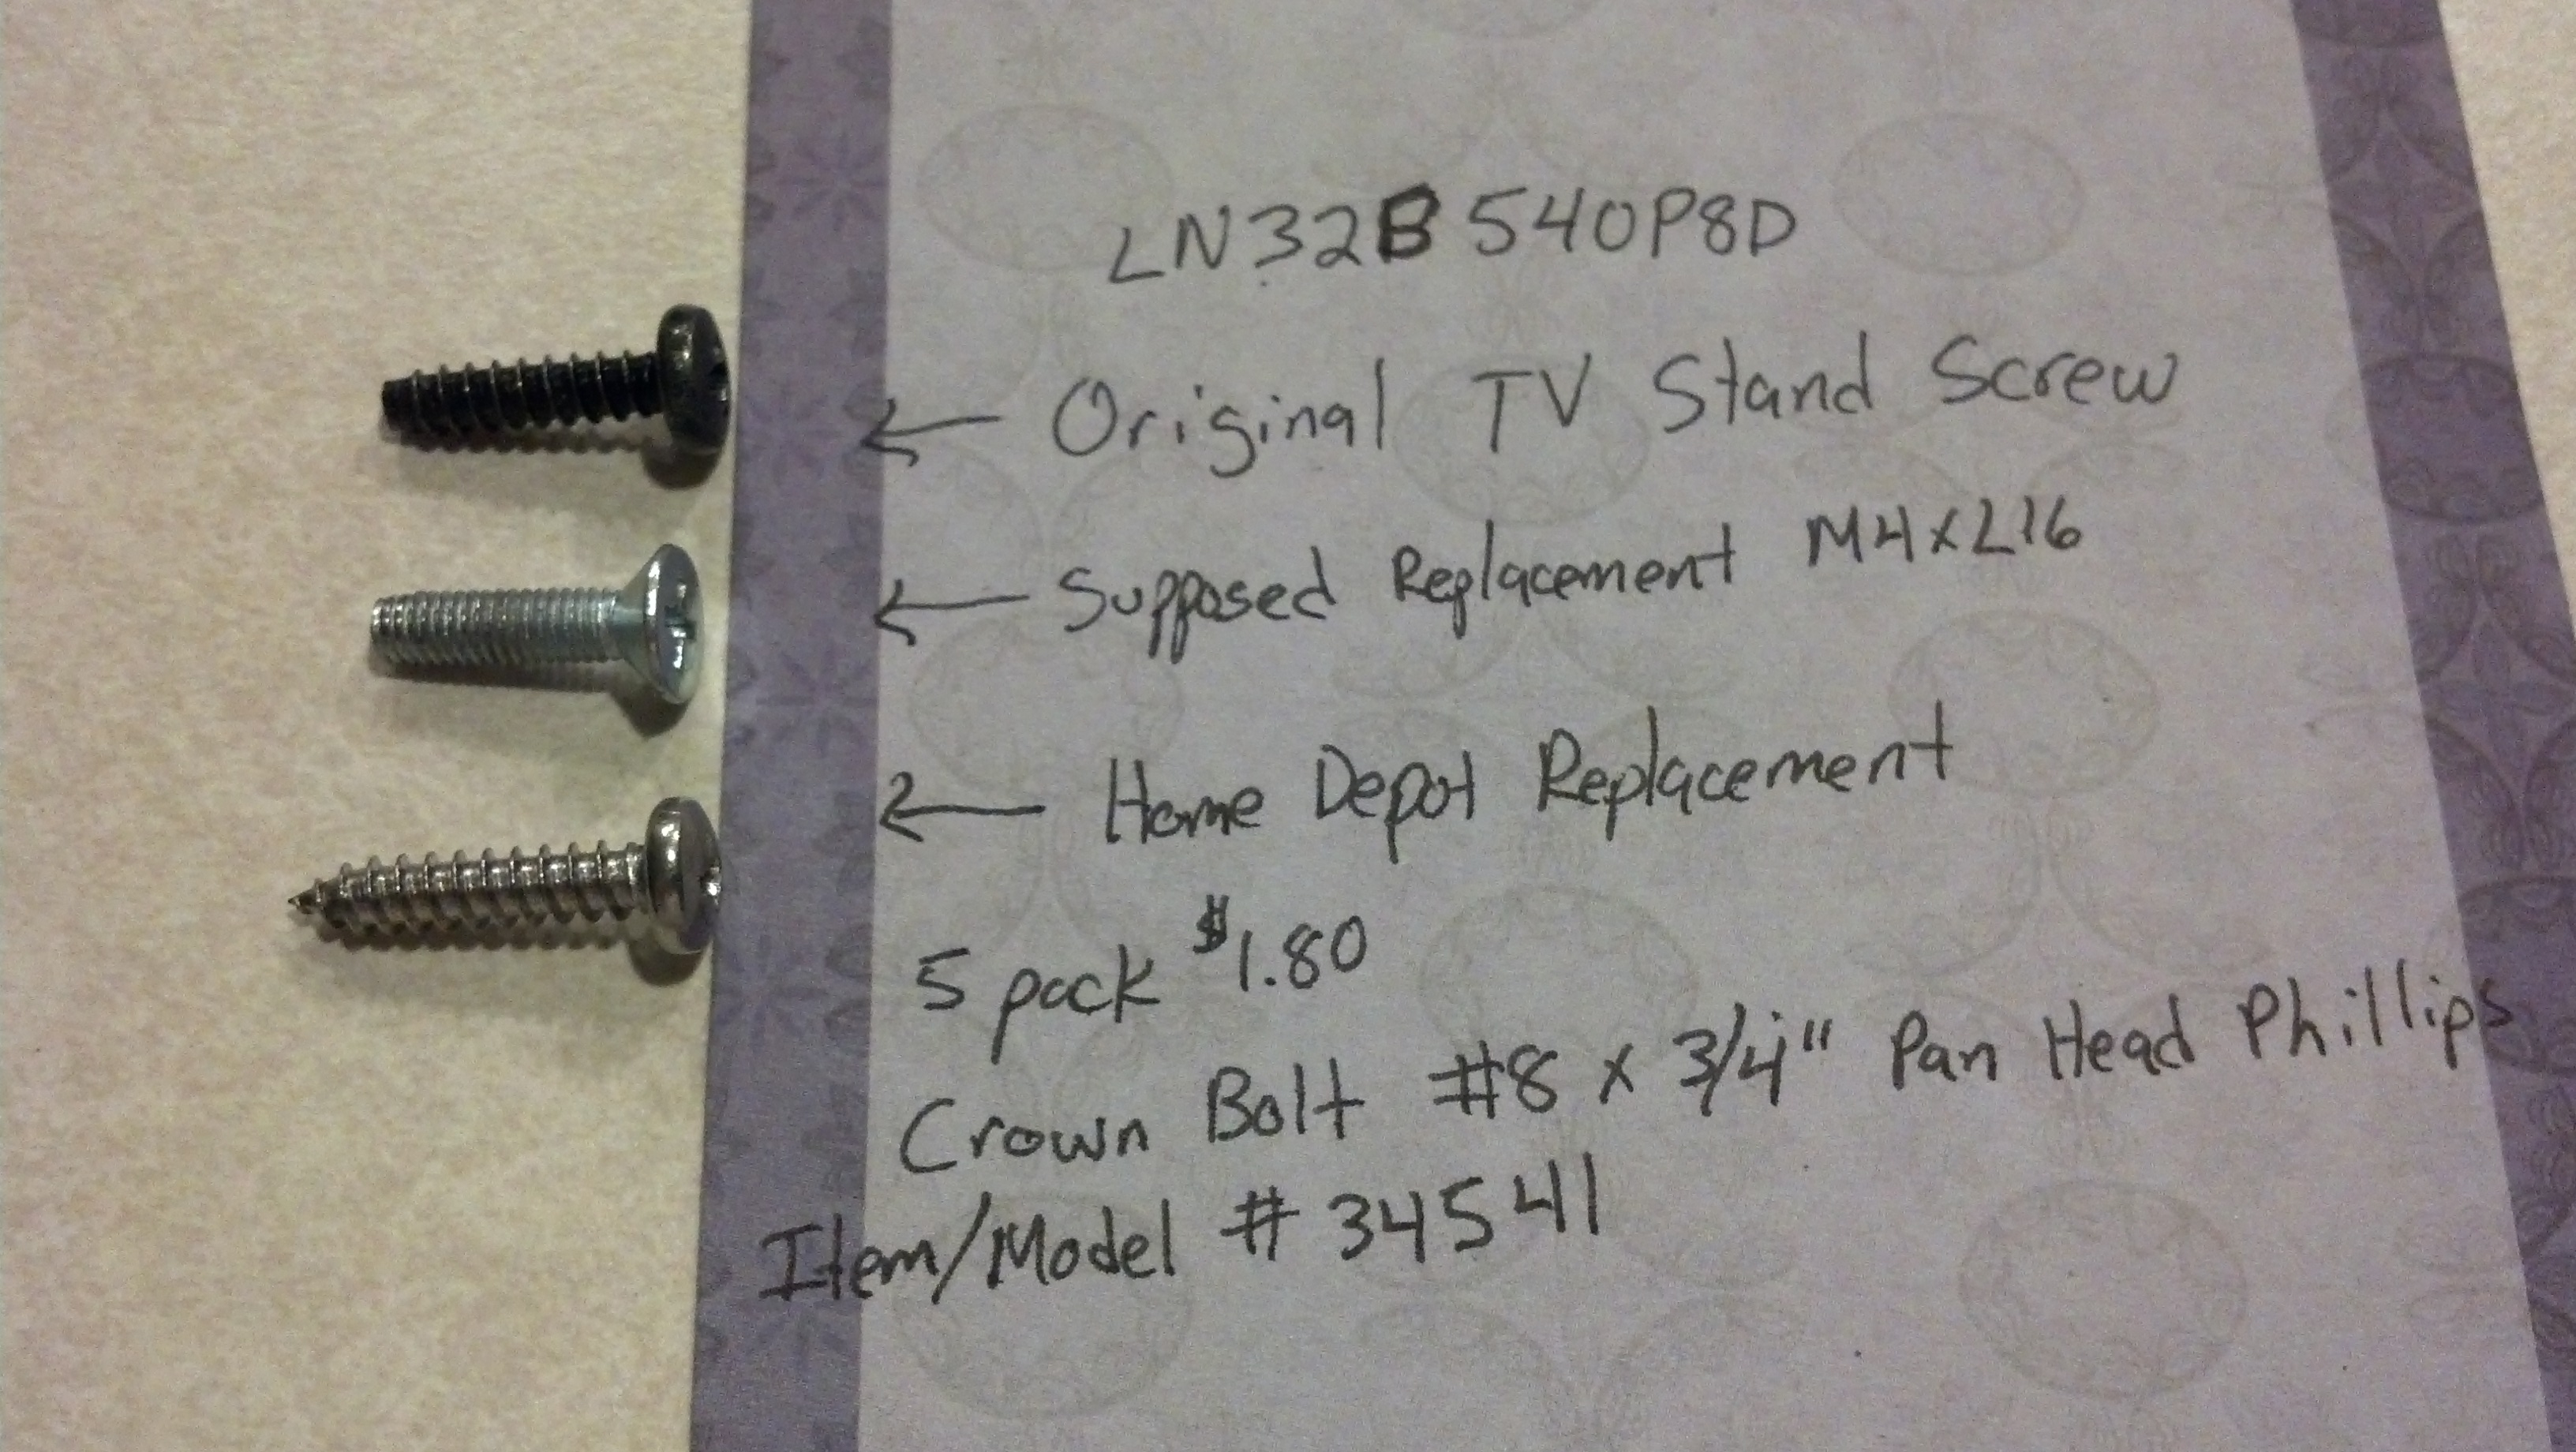 vizio tv stand replacement screws. can anyone help me identify this screw size for my tv stand? - avs forum | home theater discussions and reviews vizio stand replacement screws